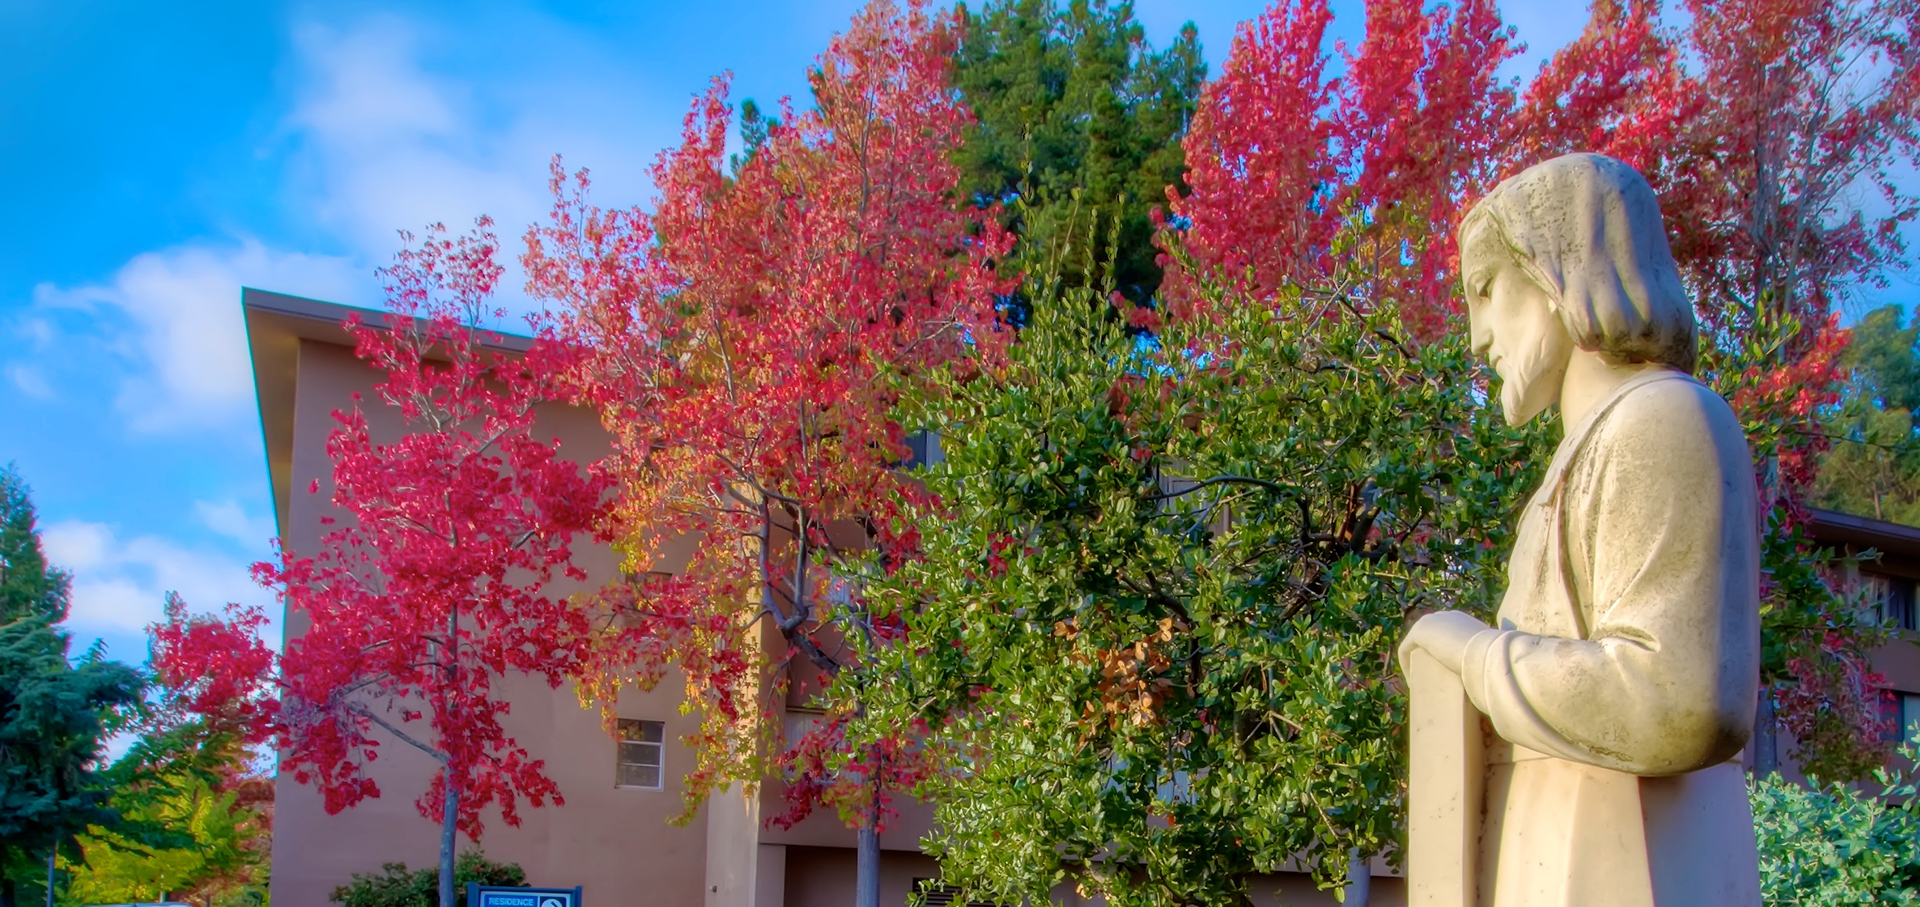 Fall foliage at HNU